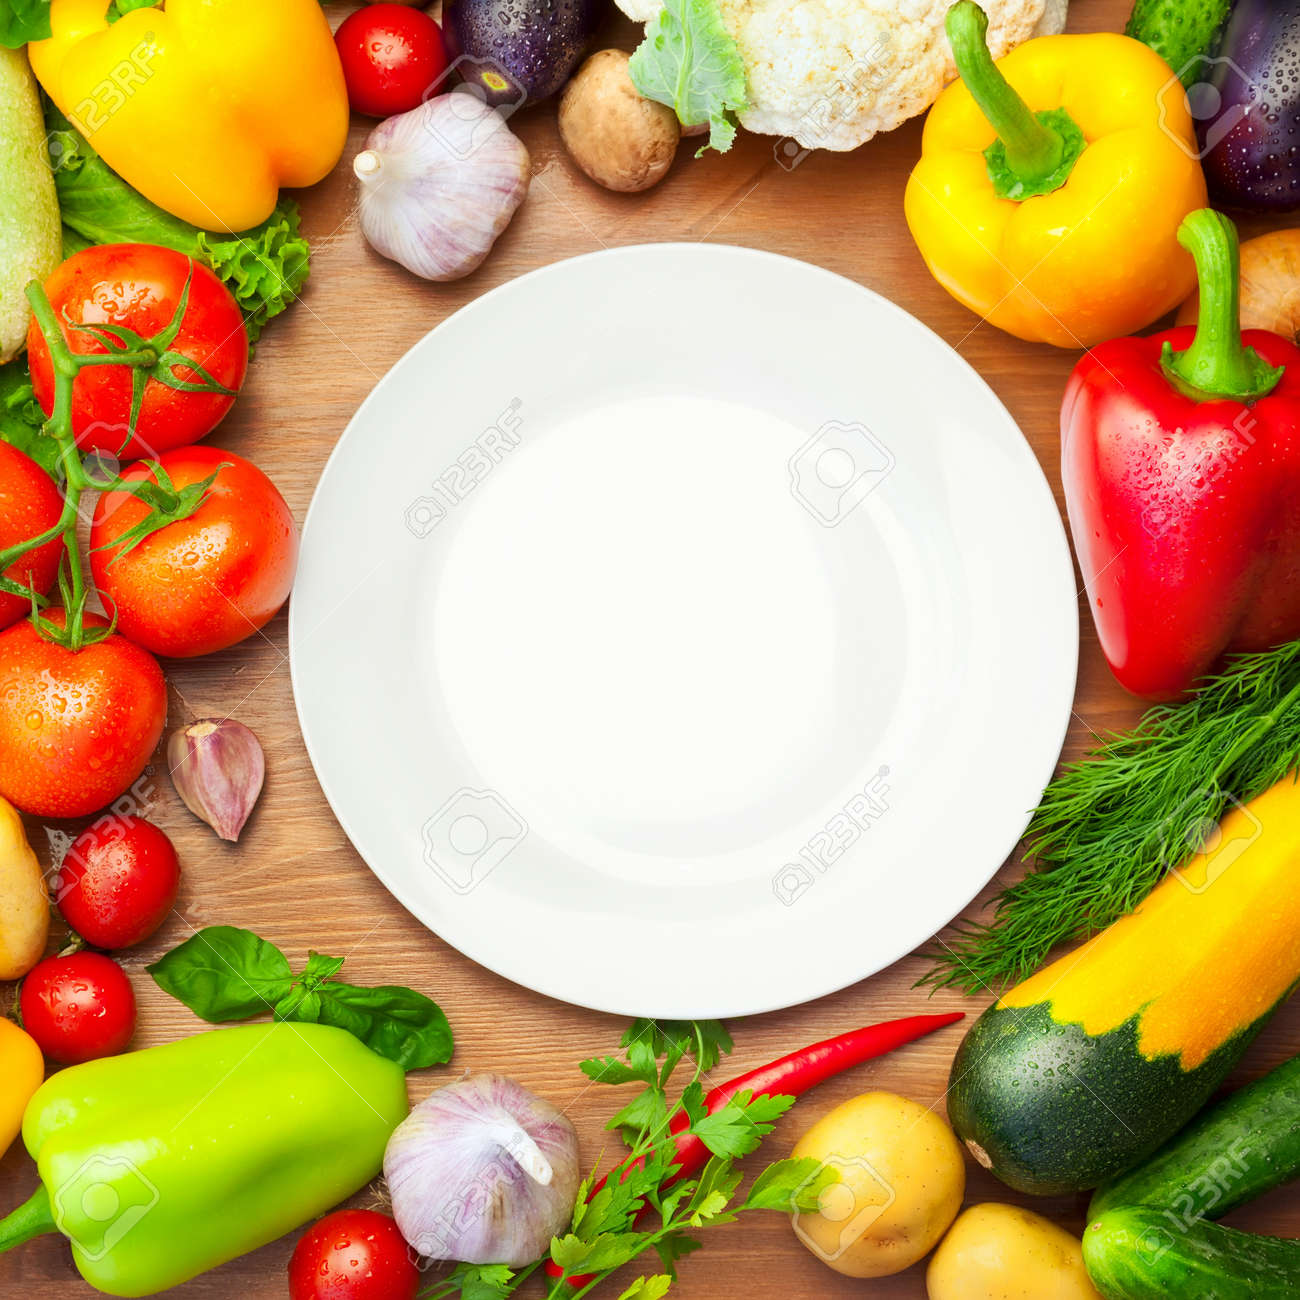 Fresh Organic Vegetables on wooden Table Around White Plate   with copy space for your text Stock Photo - 20294440